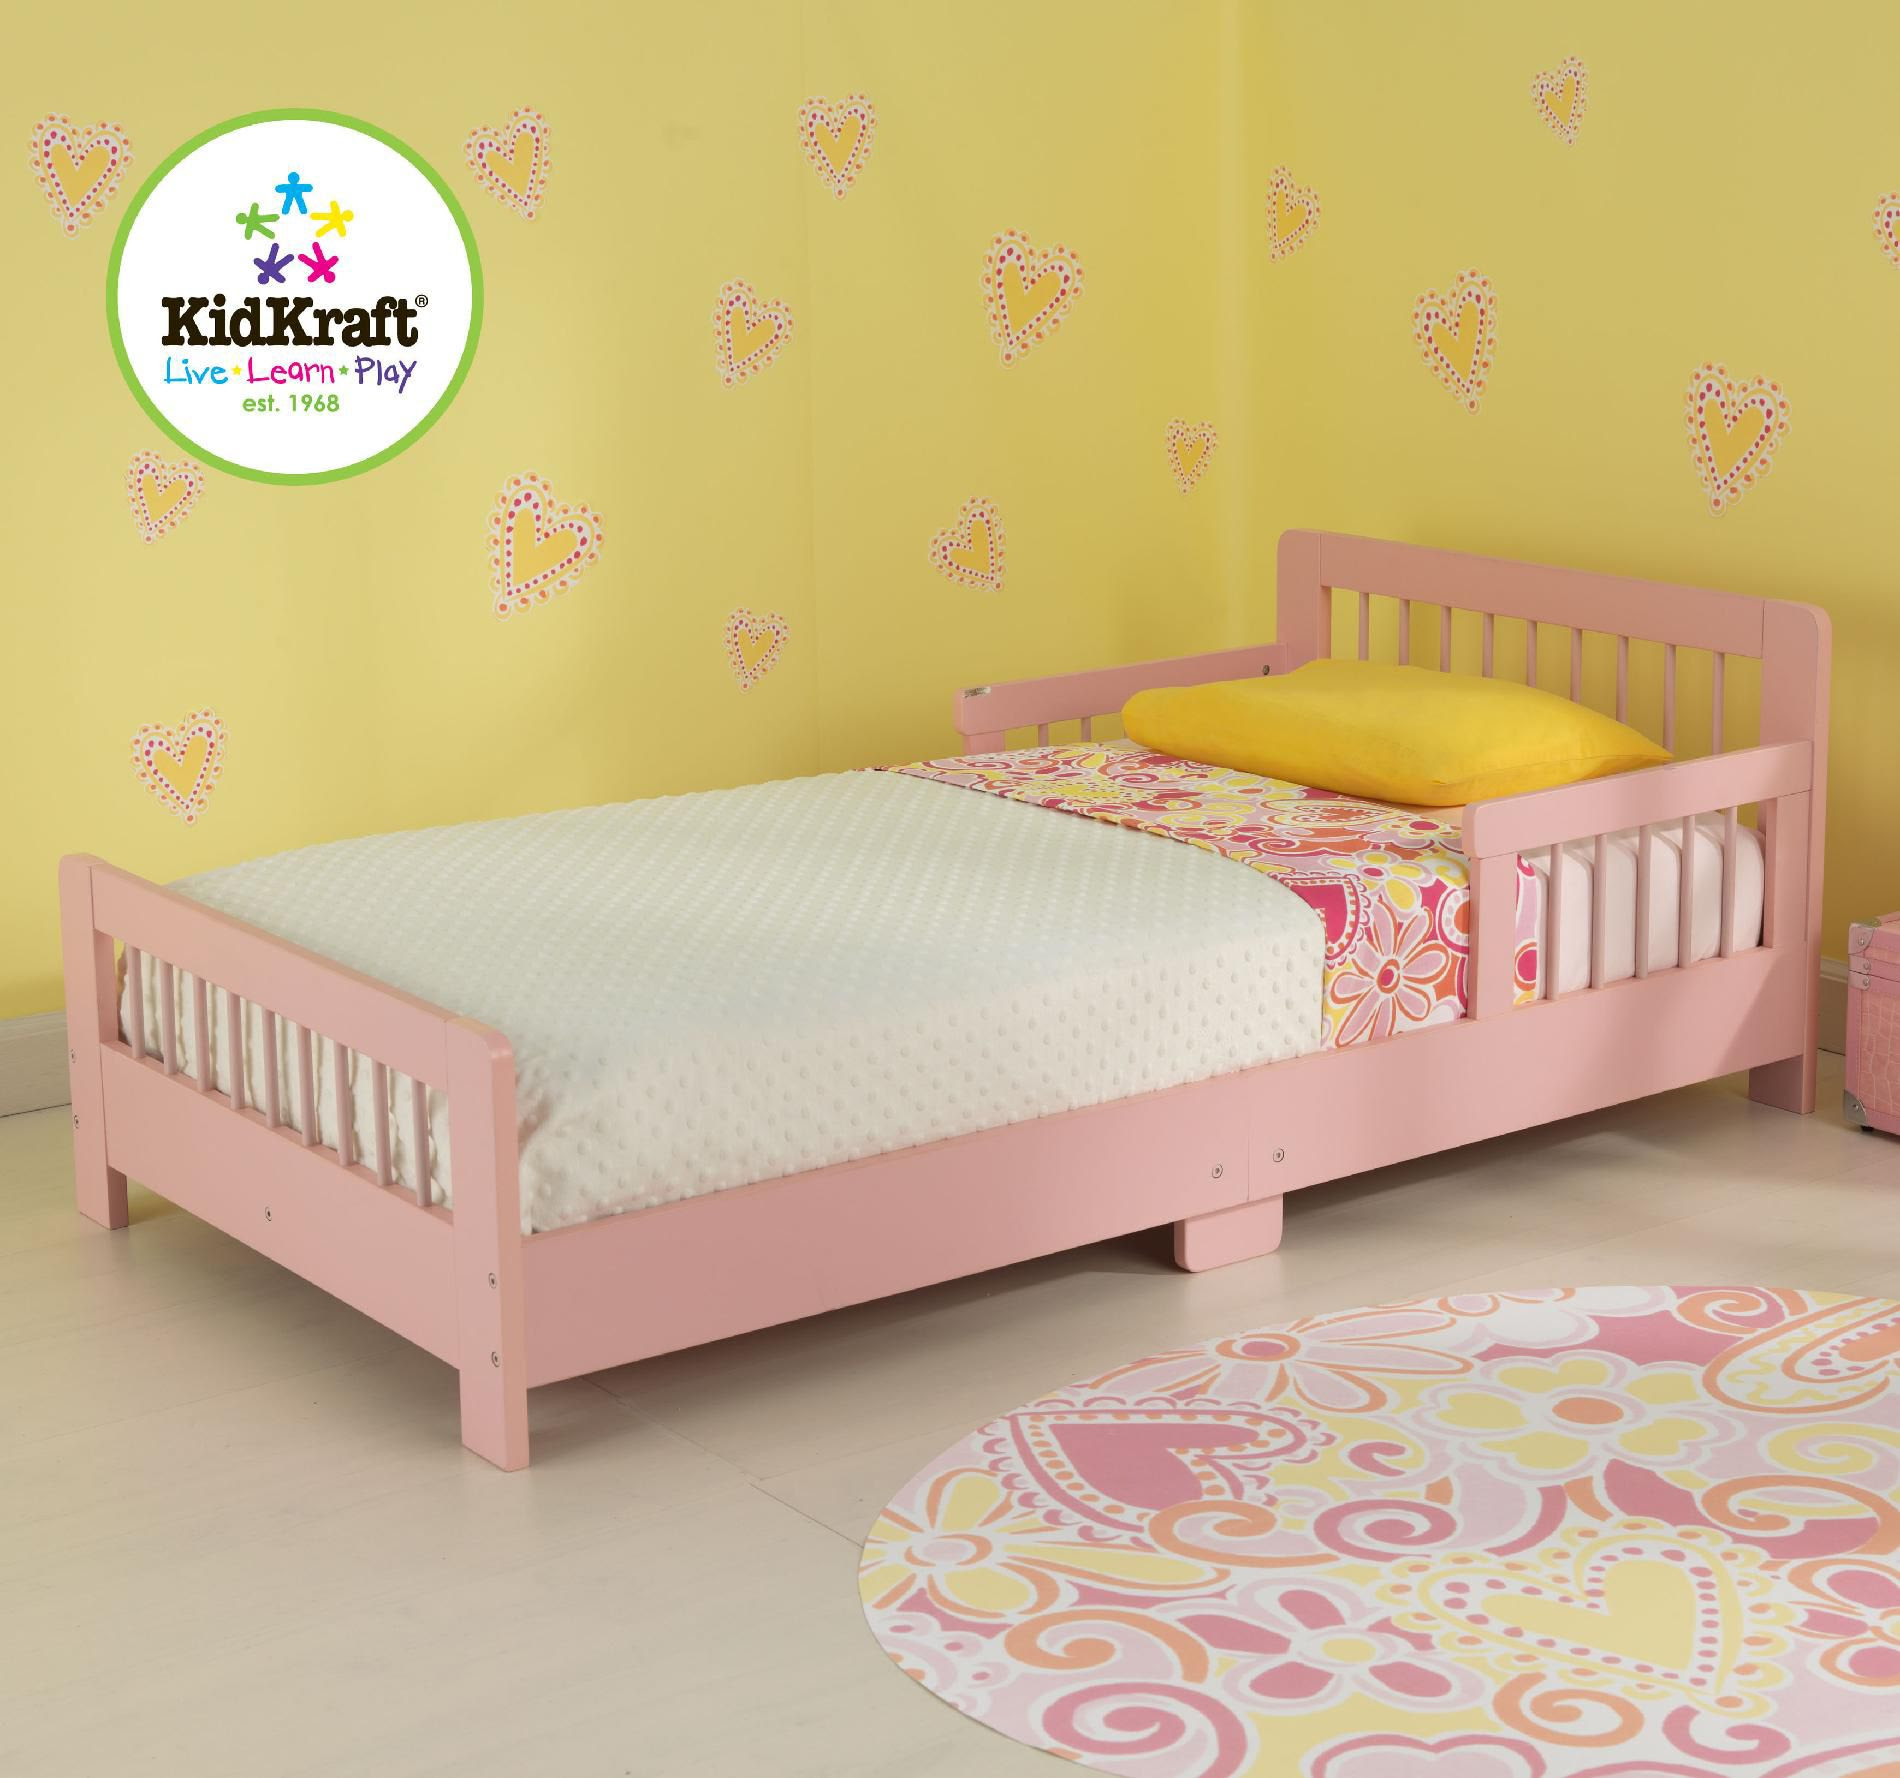 Toddler Bed Offers: Cheap Shopping Offers: Big Deals MICA DESIGNS, INC